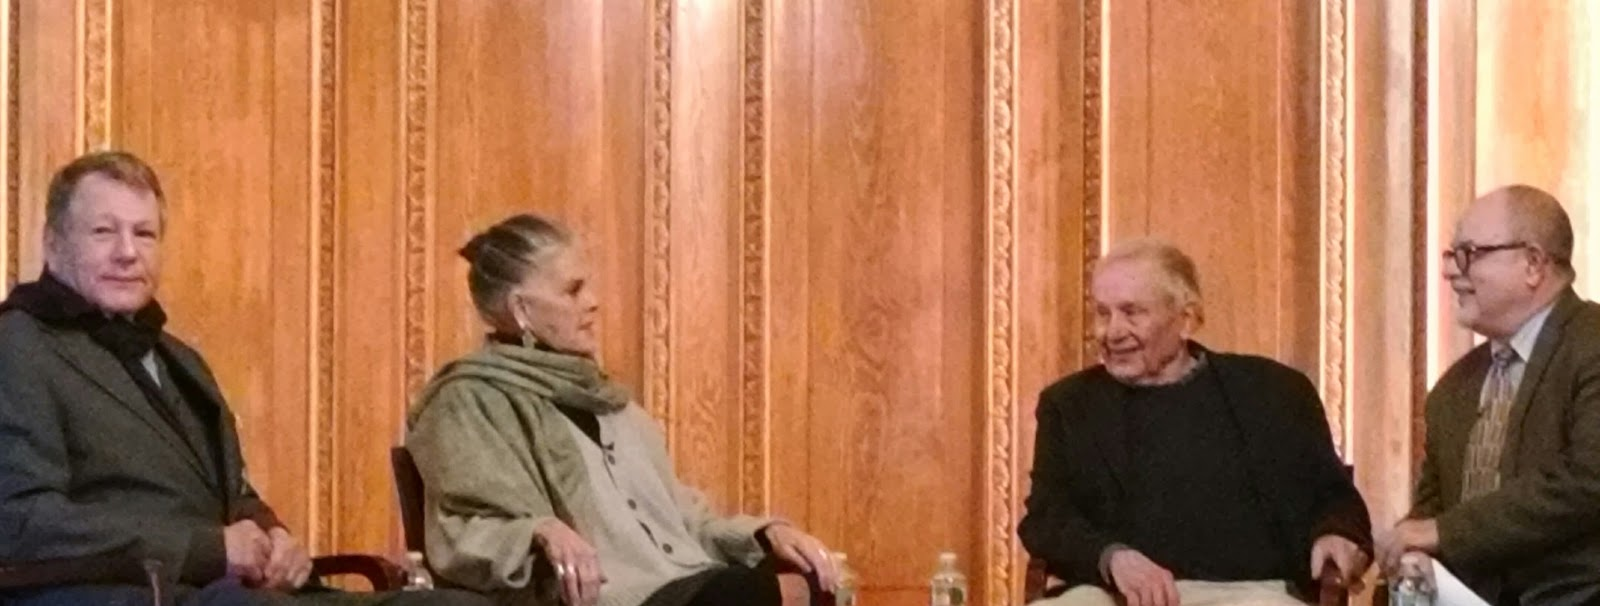 bww interview ryan oneal ali macgraw ar gurney of love letters at the bushnell